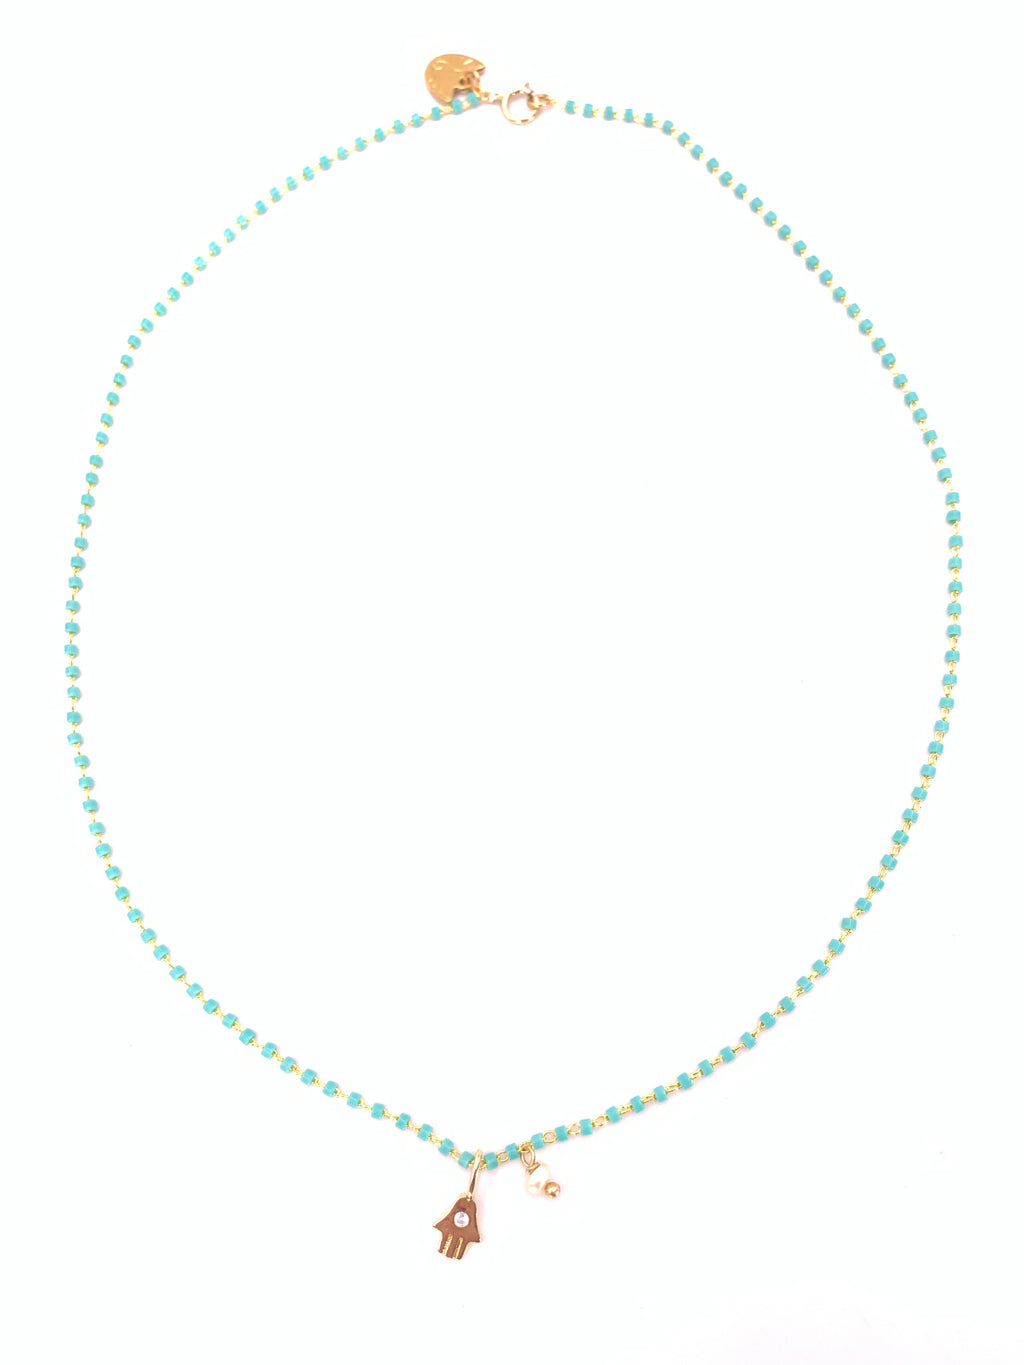 Hansa Pearl Turquoise Necklace